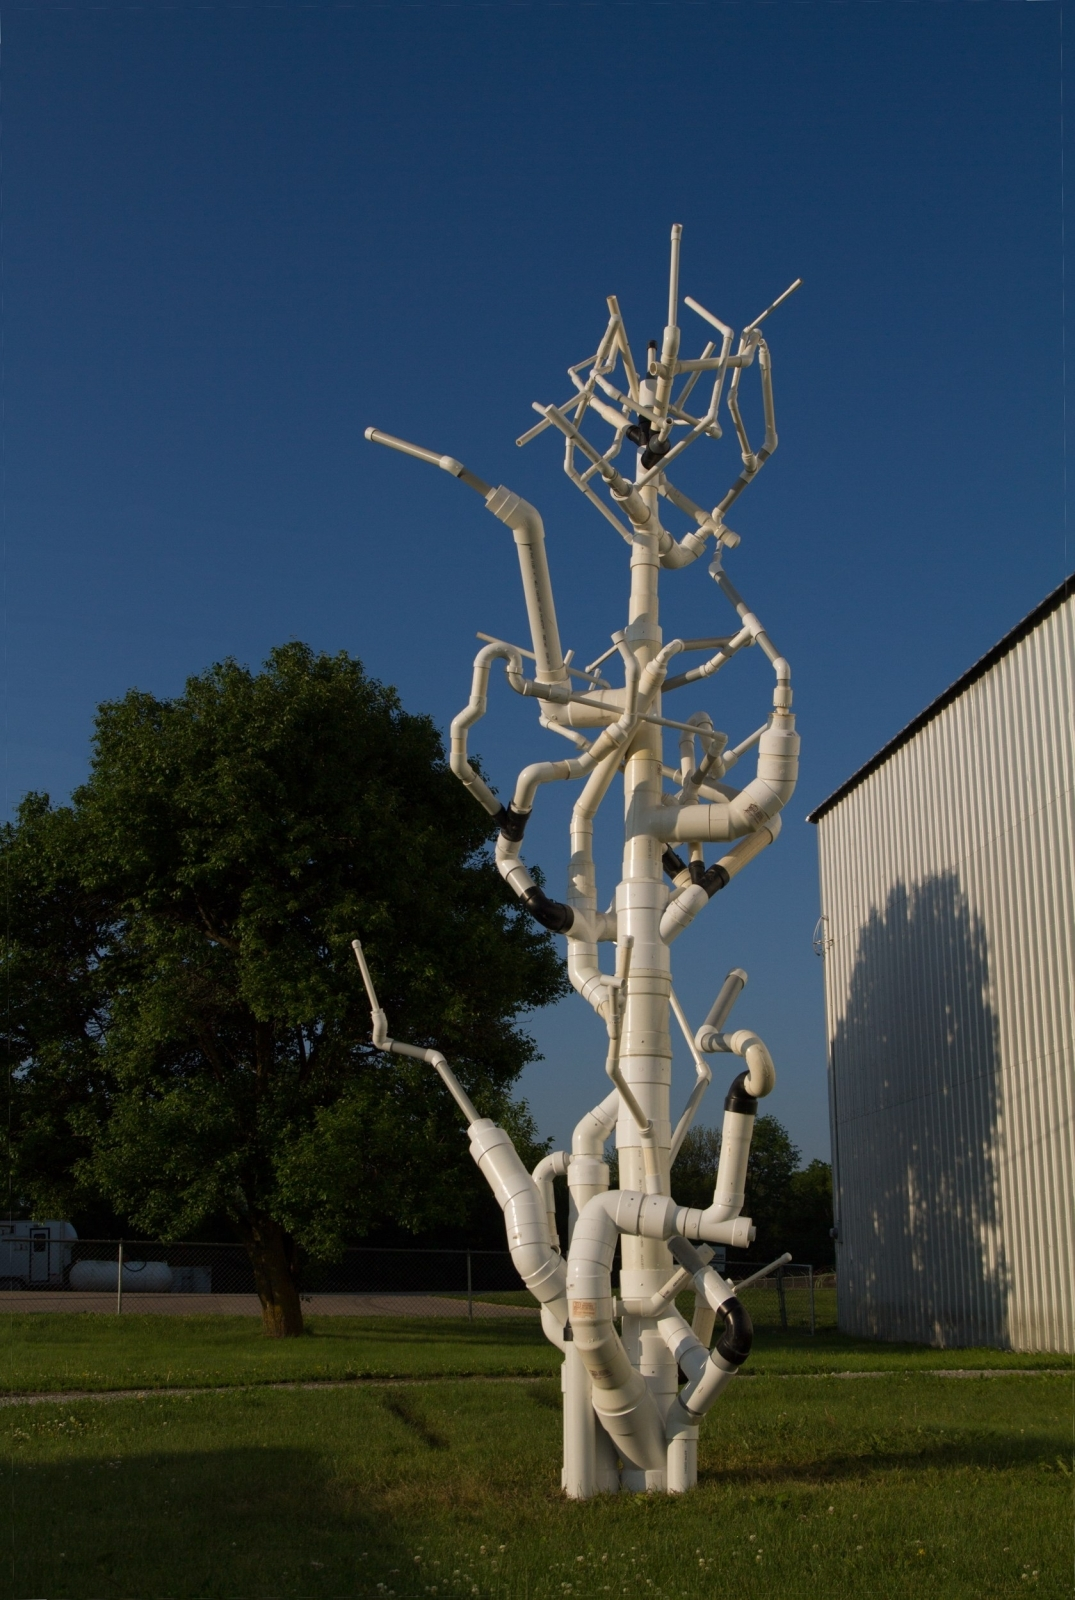 Arbor Vitae, site-specific temporary installation, PVC Pipe, PVC glue, sand, rivets, joinery, sponsored by Kimmel Harding Nelson Center, Art/Industry collaboration with Crown-Line Plastics, Nebraska City, NE